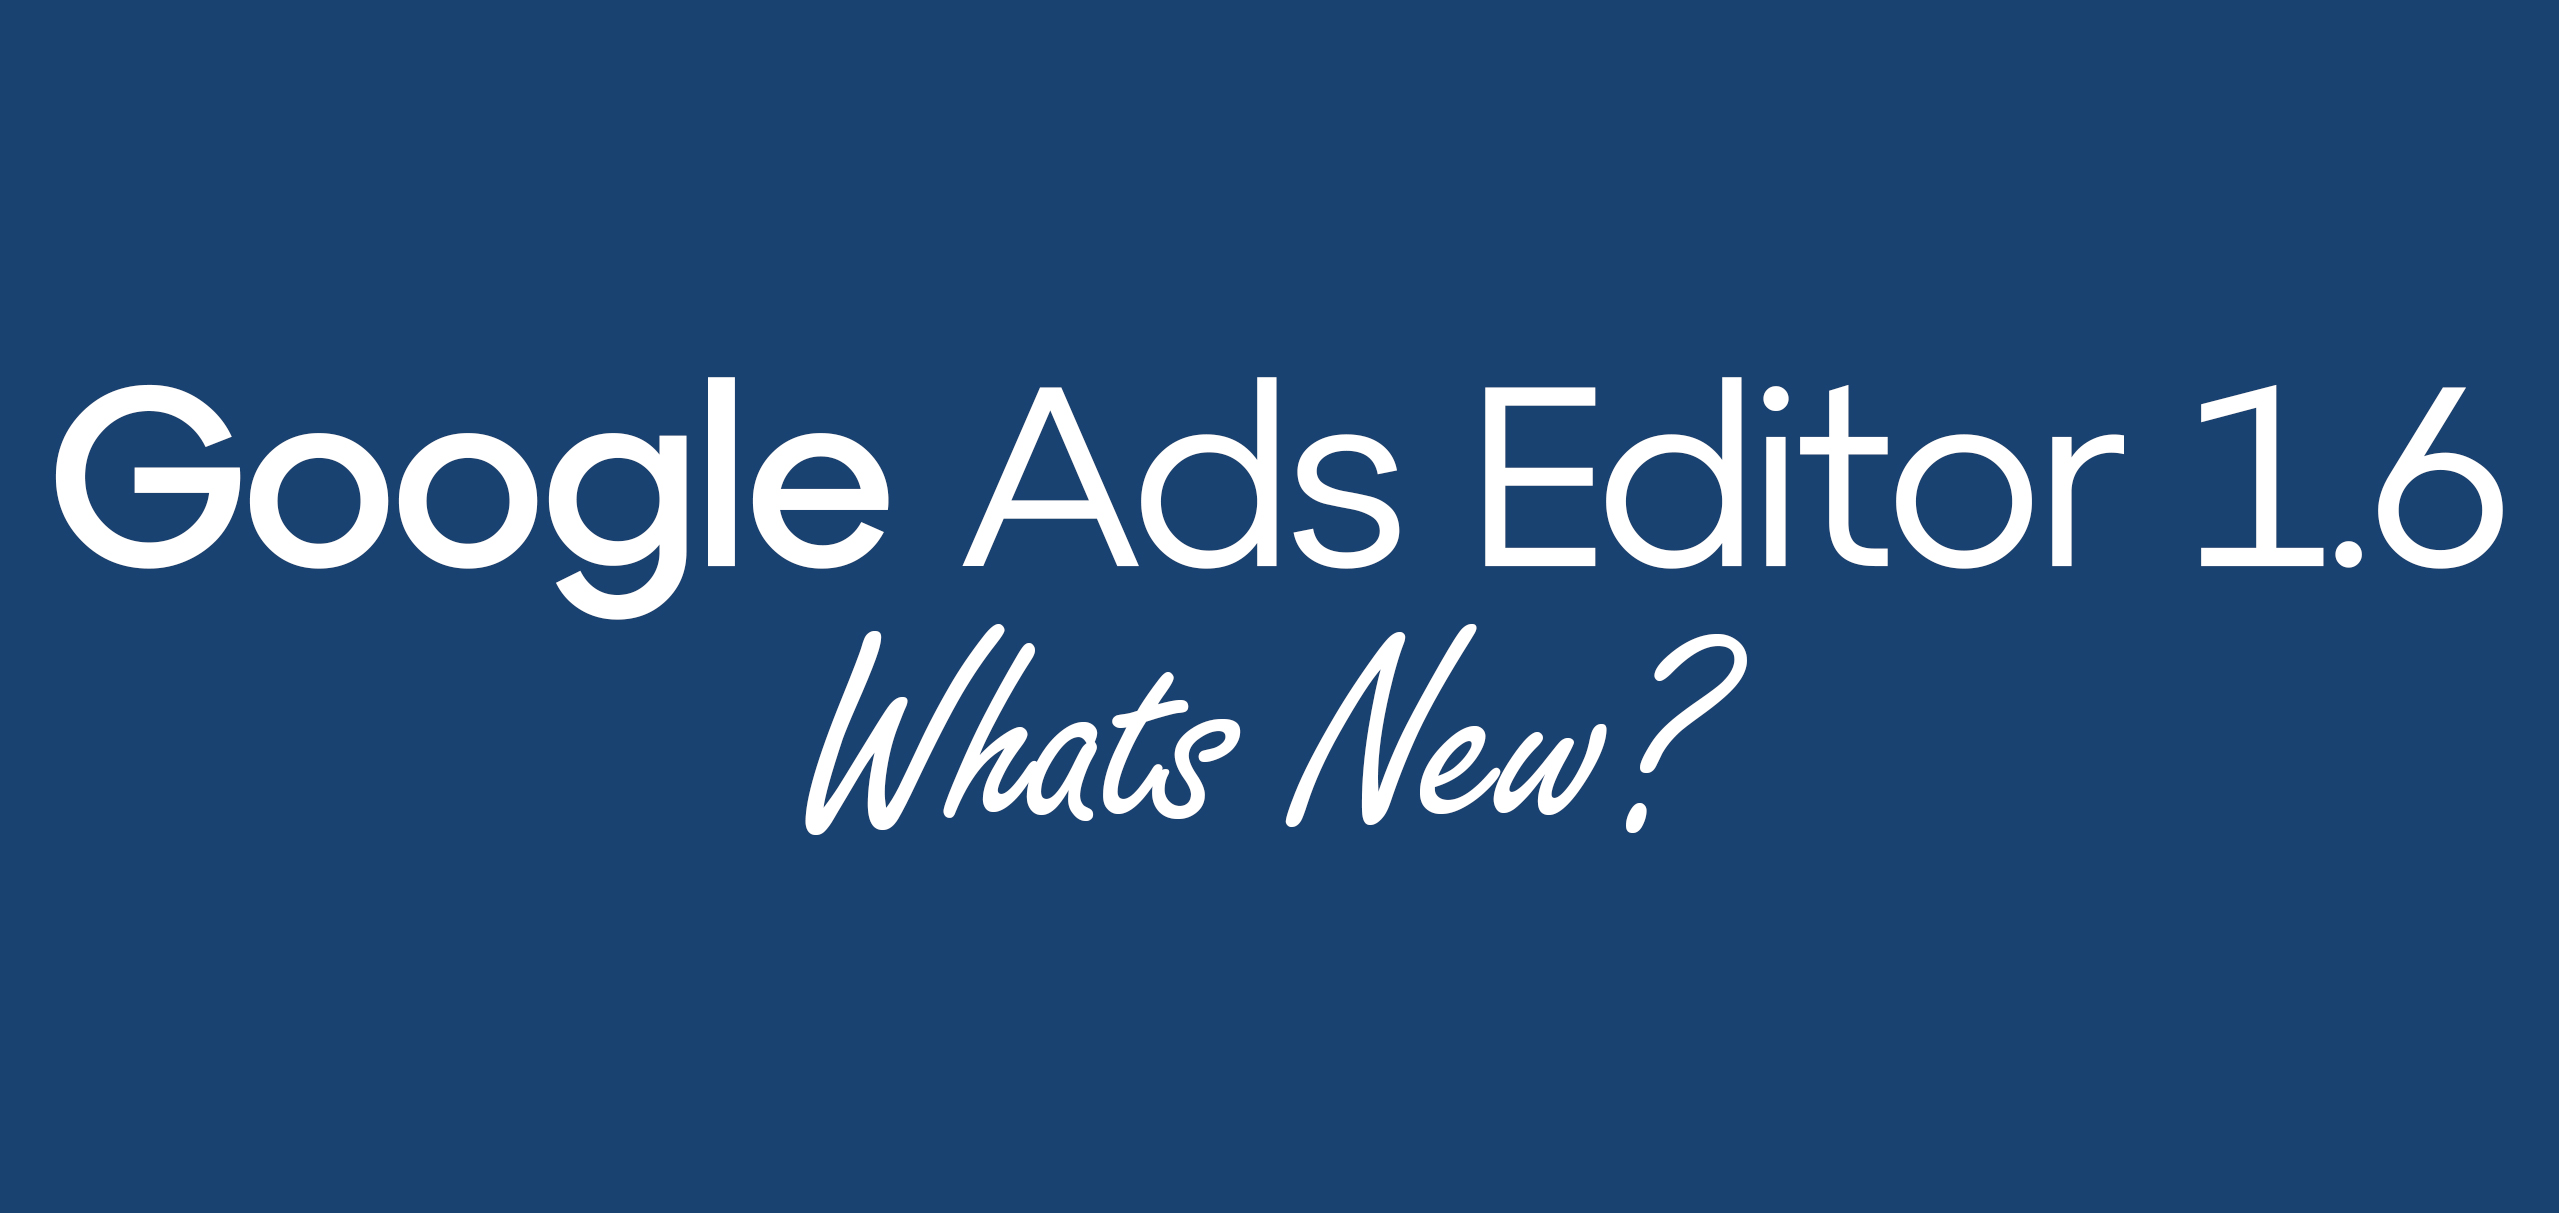 What's new in Google Ads Editor version 1.6